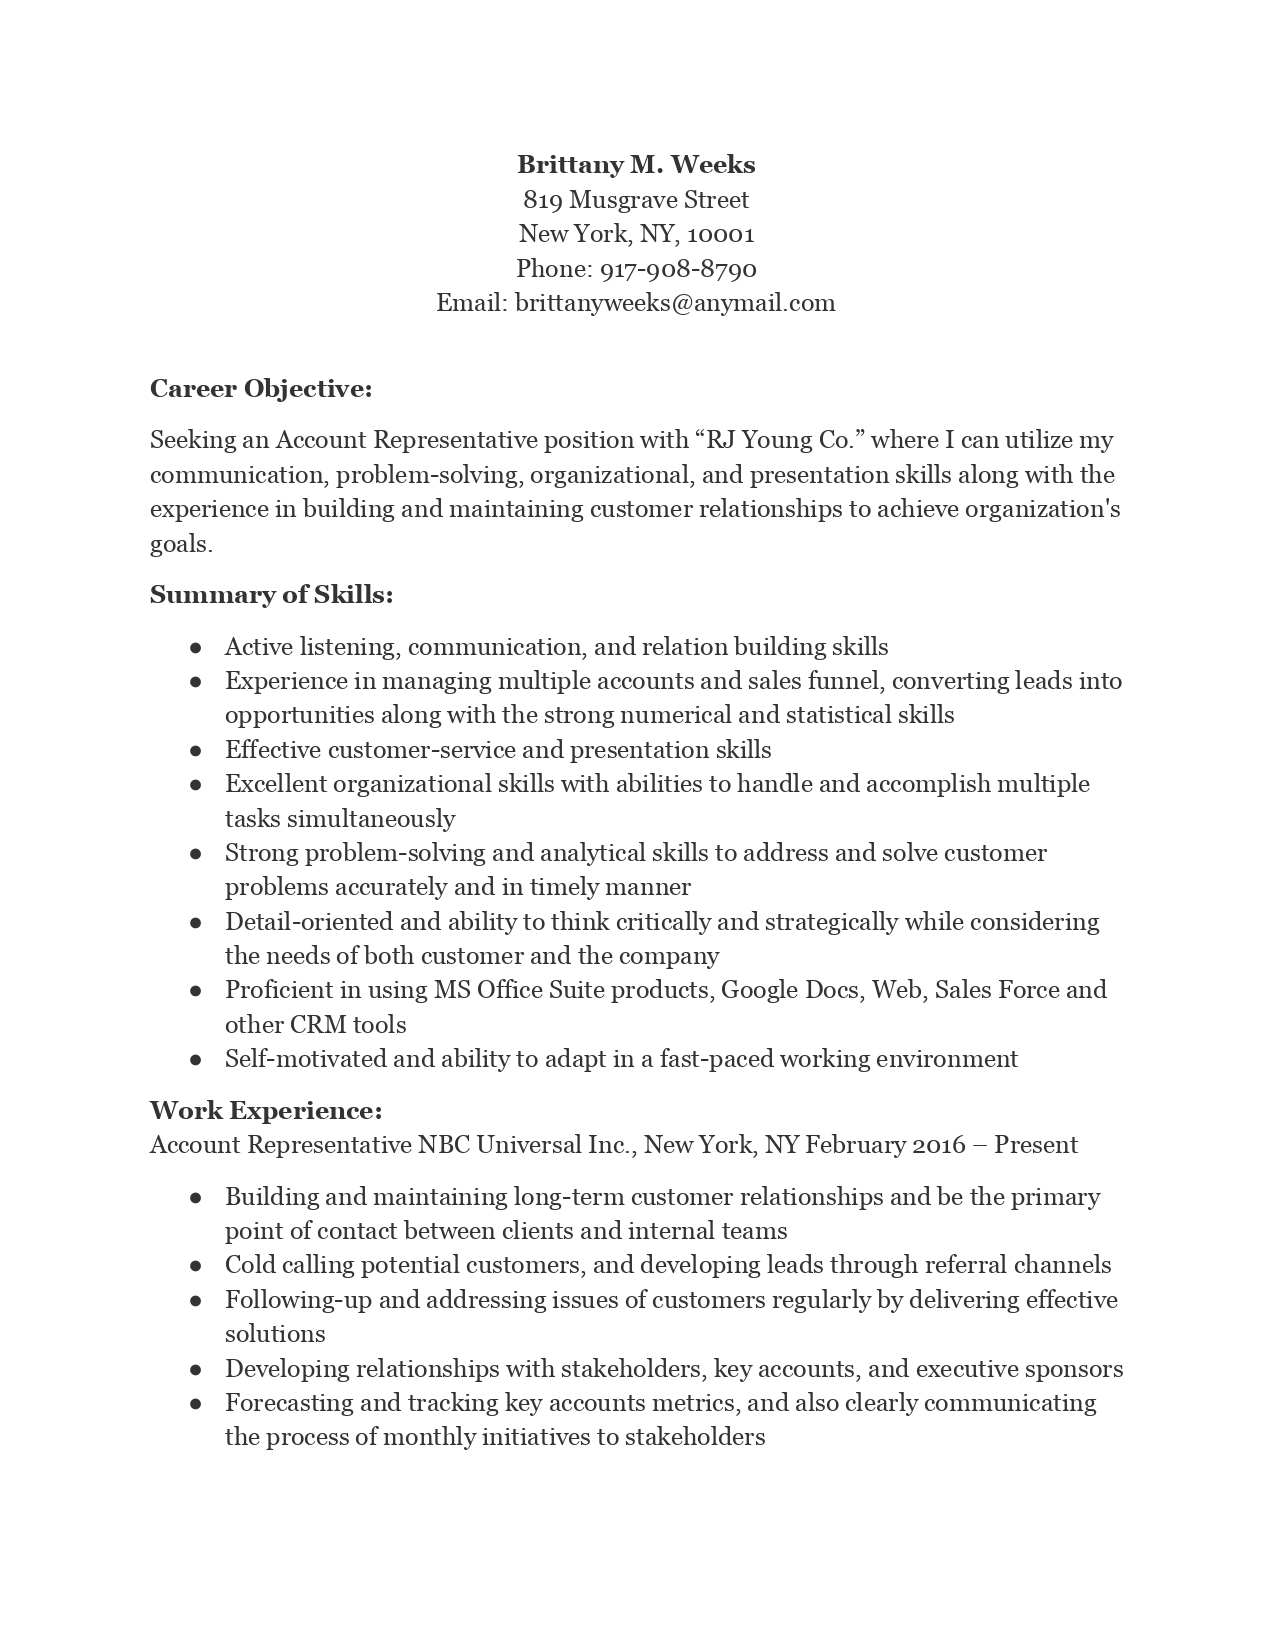 account representative resume requirements film example winway deluxe review actionable Resume Account Representative Resume